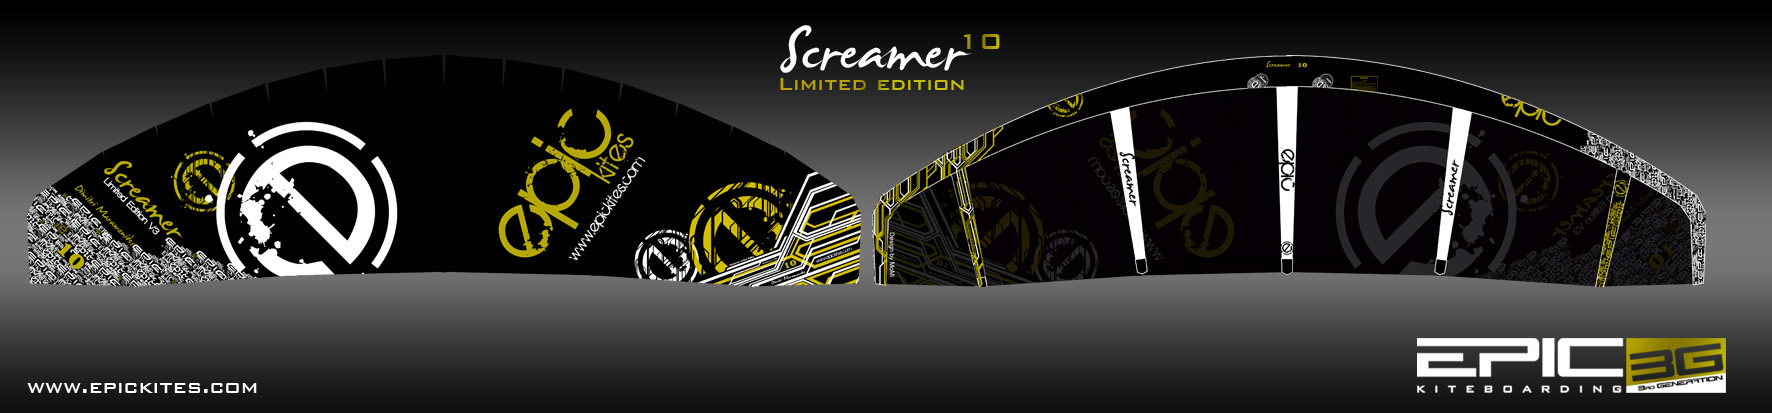 Screamer limited 3G.jpg